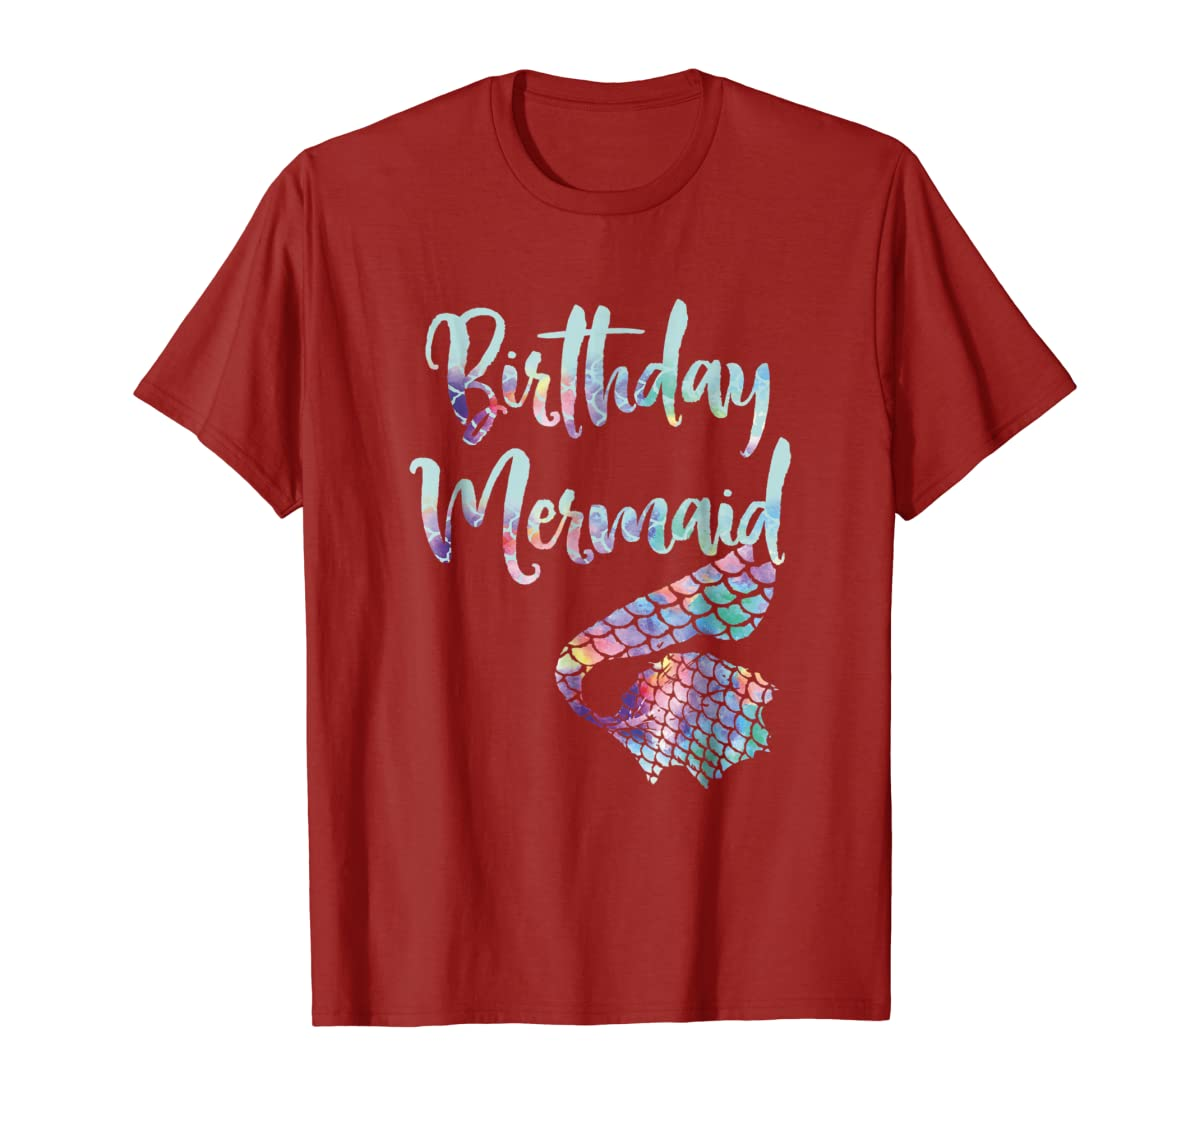 Birthday Mermaid Shirt-Men's T-Shirt-Red